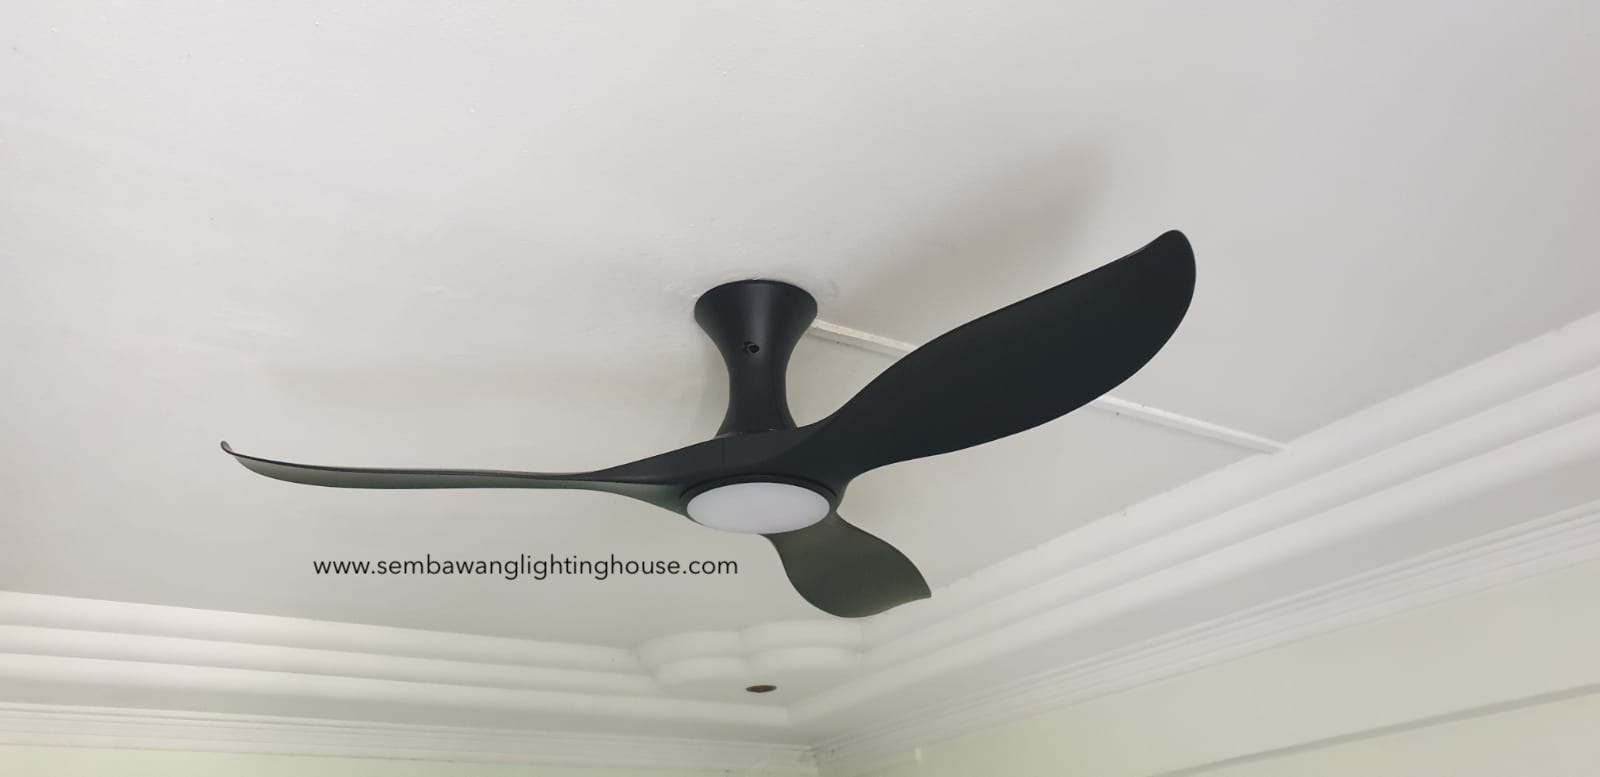 efenz-hugger-ceiling-fan-with-light-black-sembawang-lighting-house-05.jpg